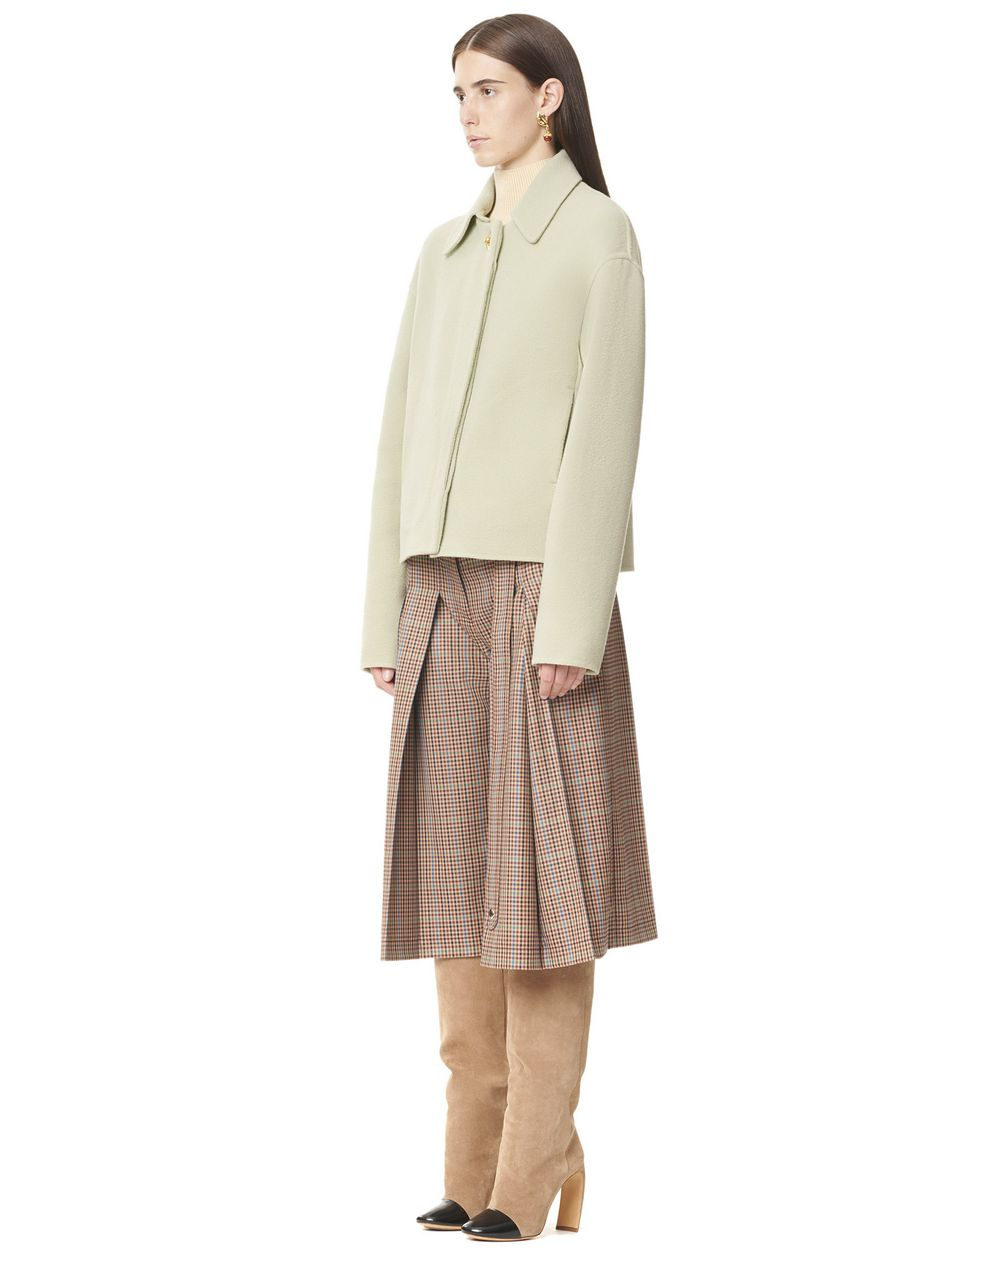 SOFT JACKET WITH DETACHABLE COLLAR - Lanvin